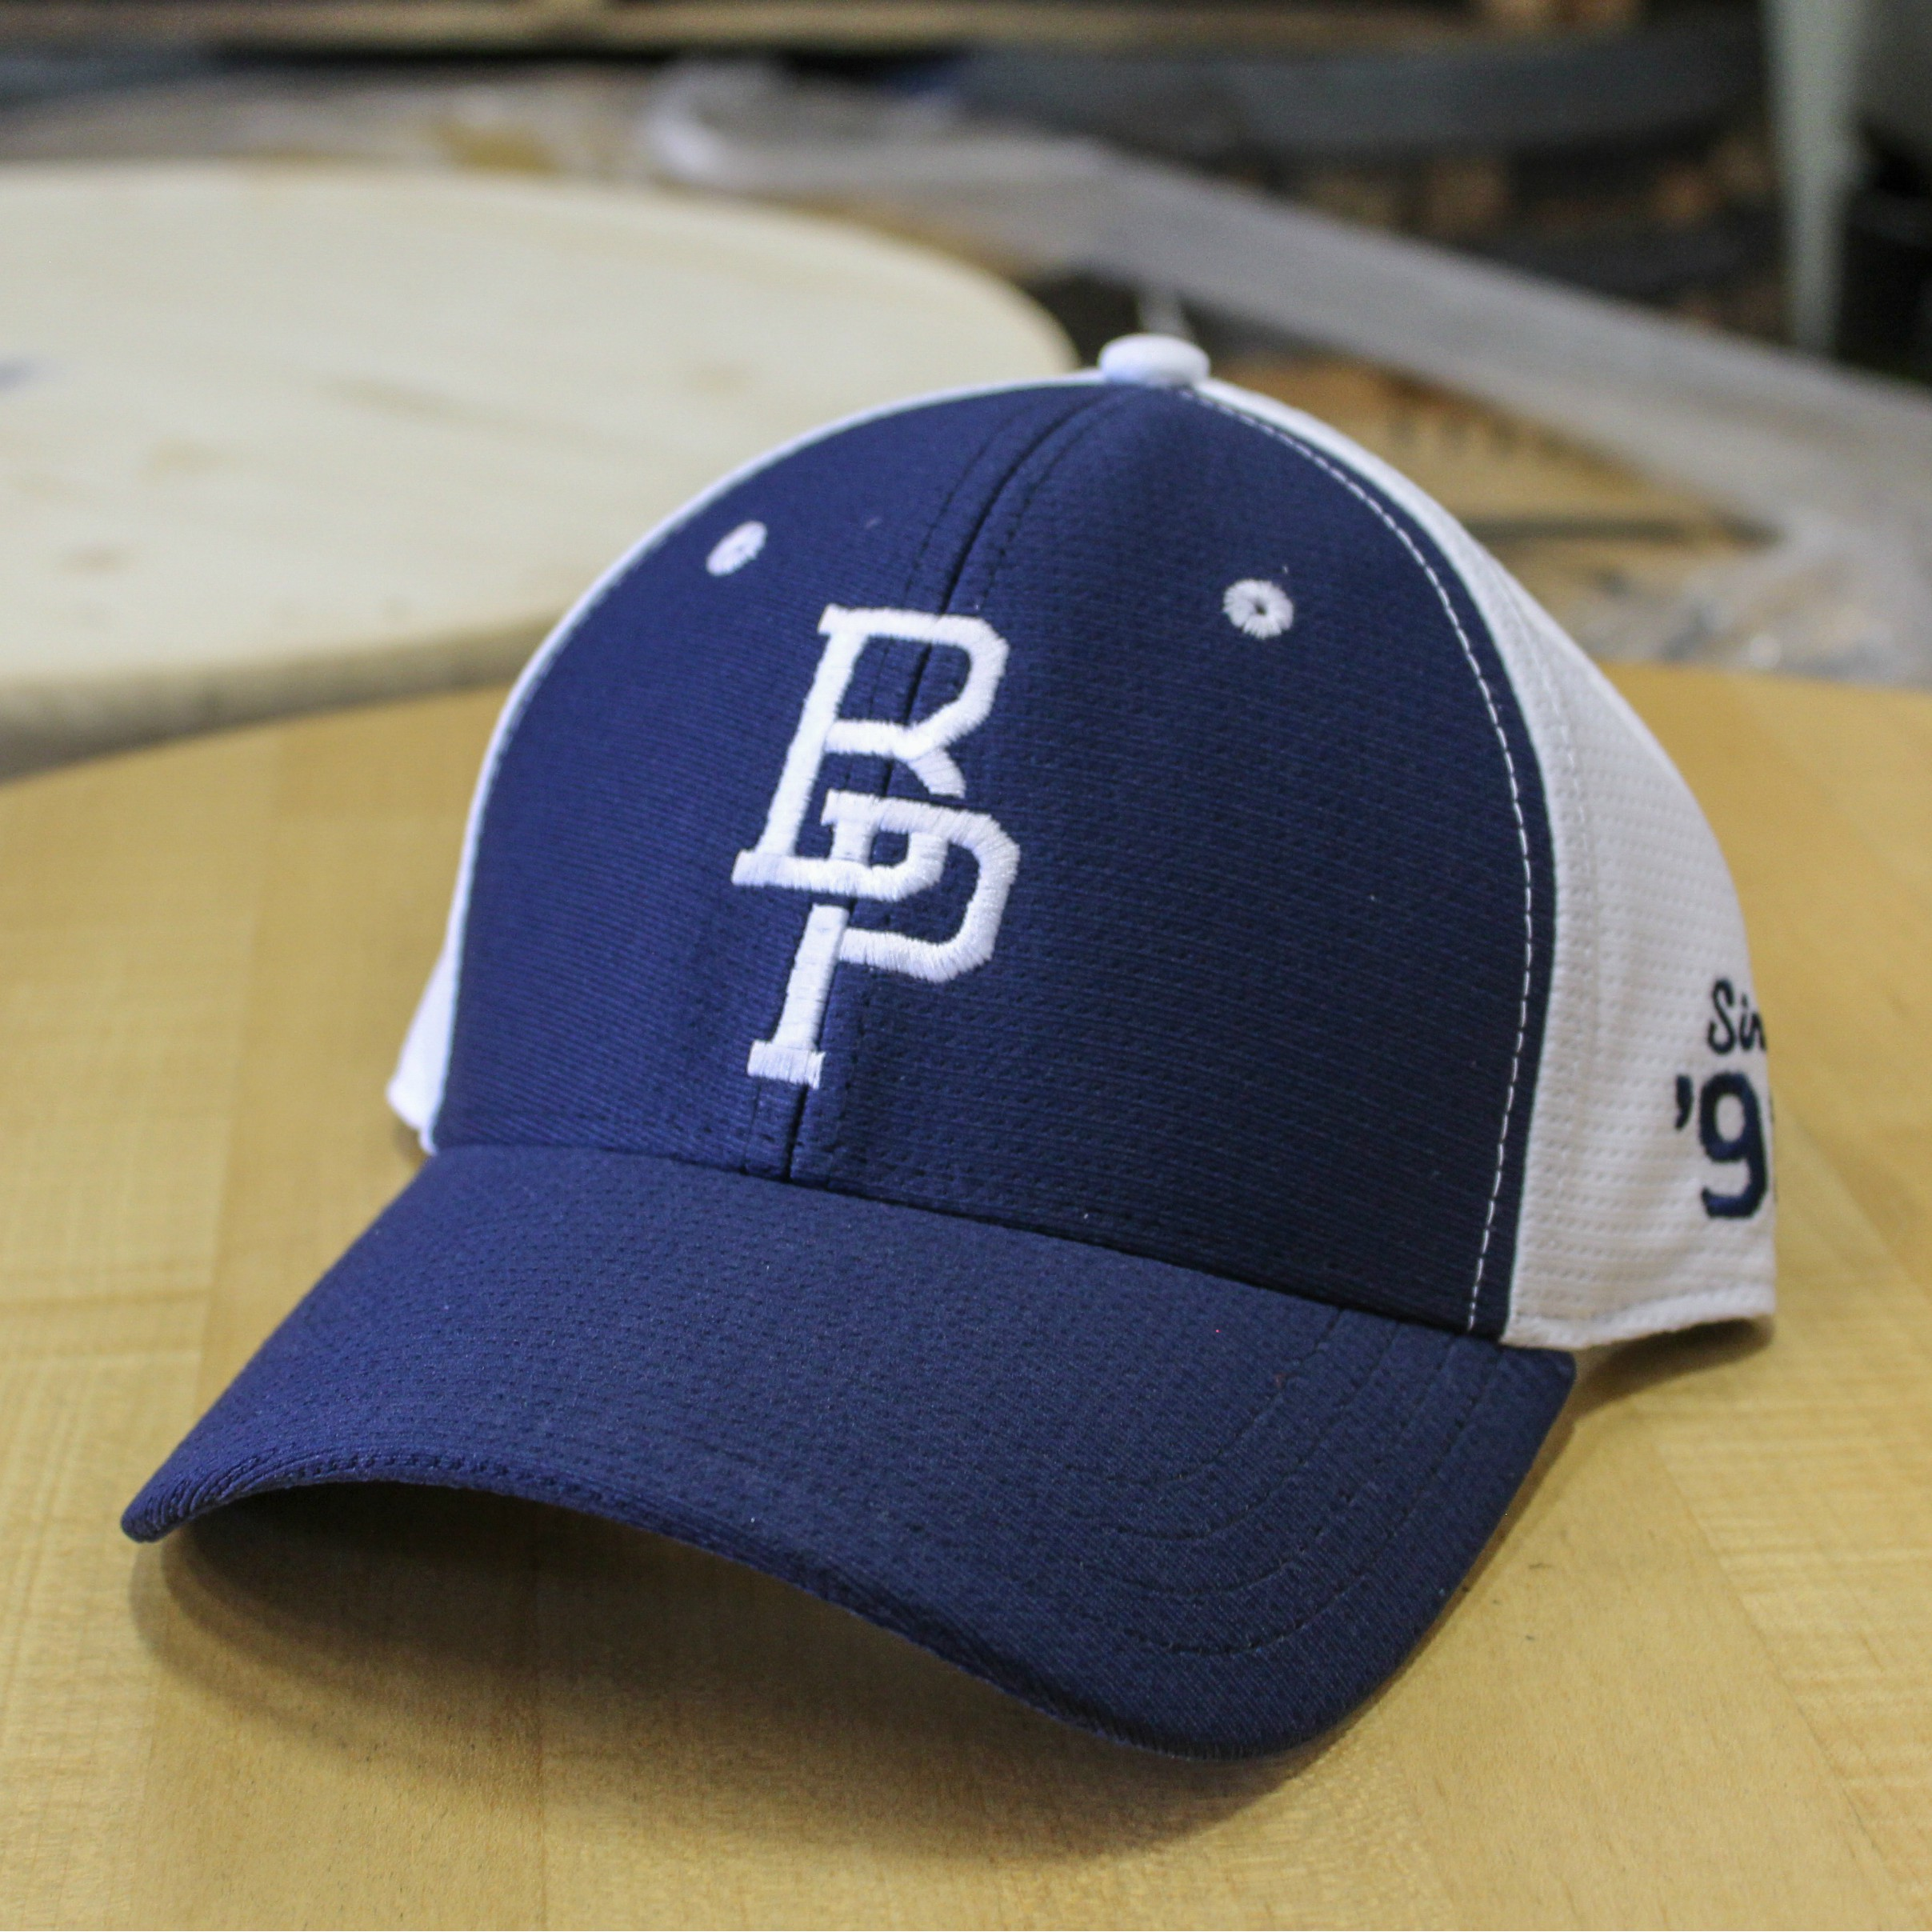 BP Navy and White Snapback THUMBNAIL